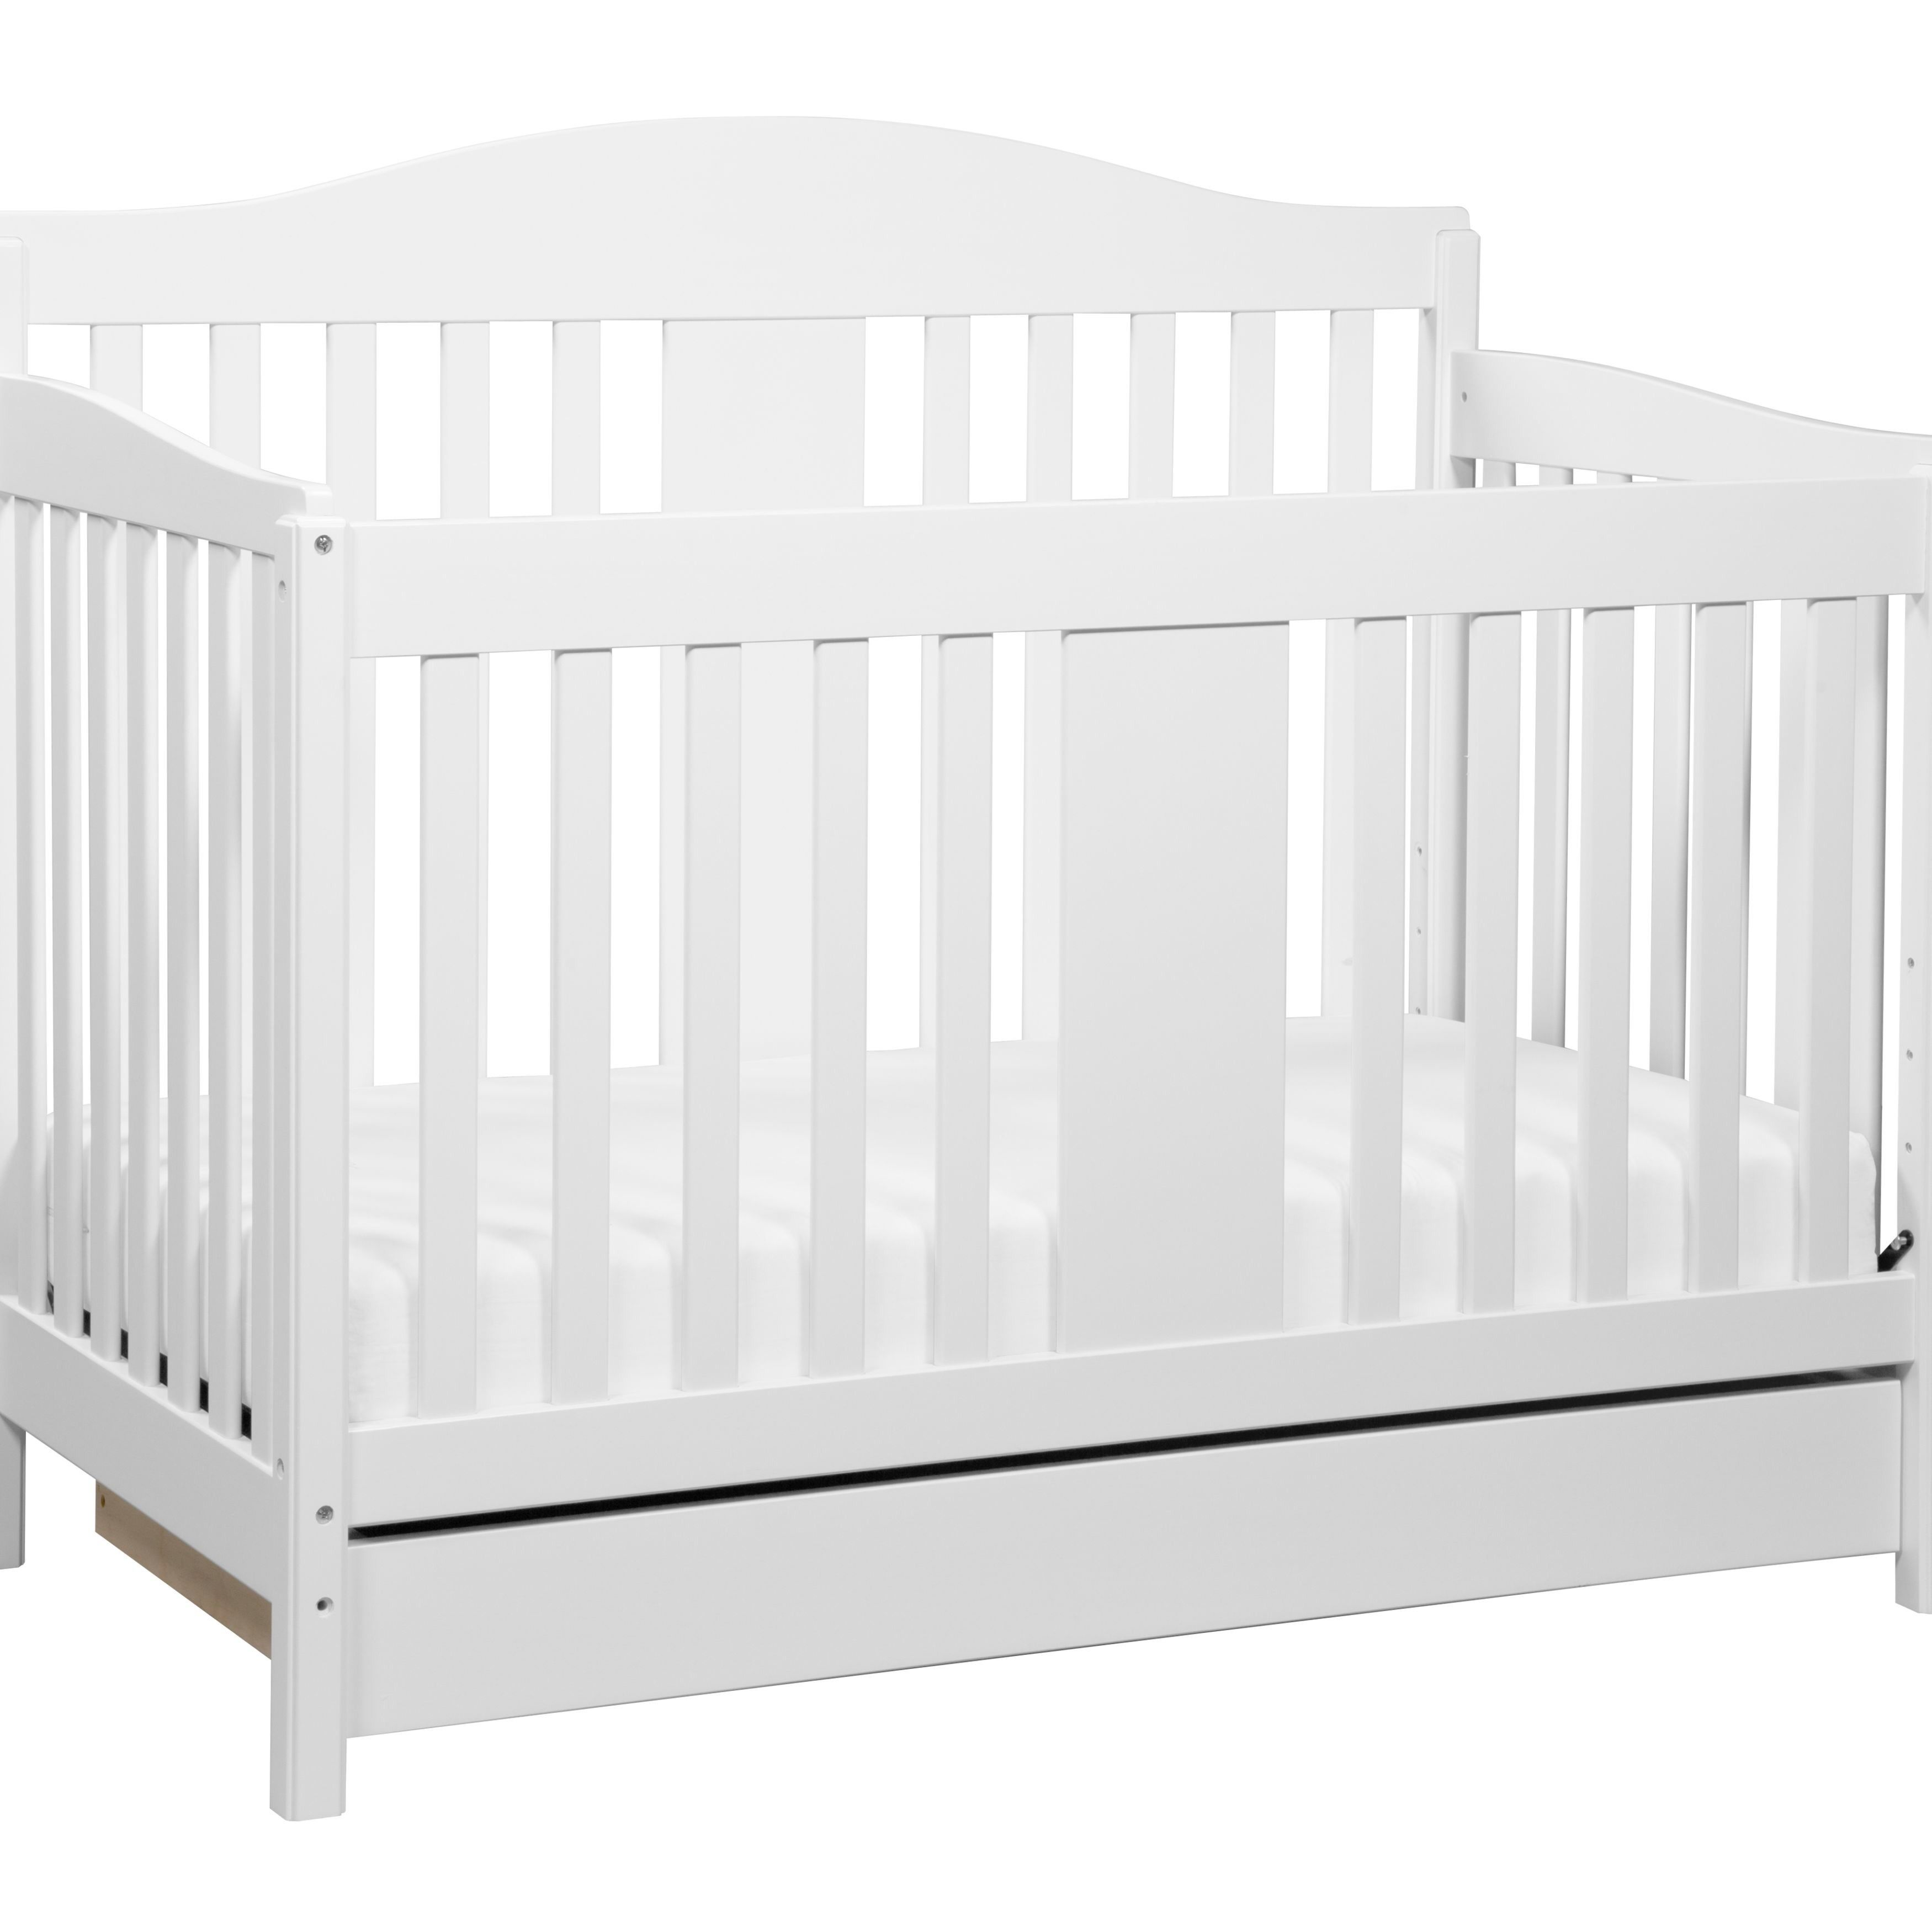 The solid Richmond 4-in-1 Convertible Crib brings classic design and rich quality to baby's nursery. A smooth under-crib drawer conveniently holds baby's bedding necessities. The Richmond Crib with drawer adapts through the years with your child.